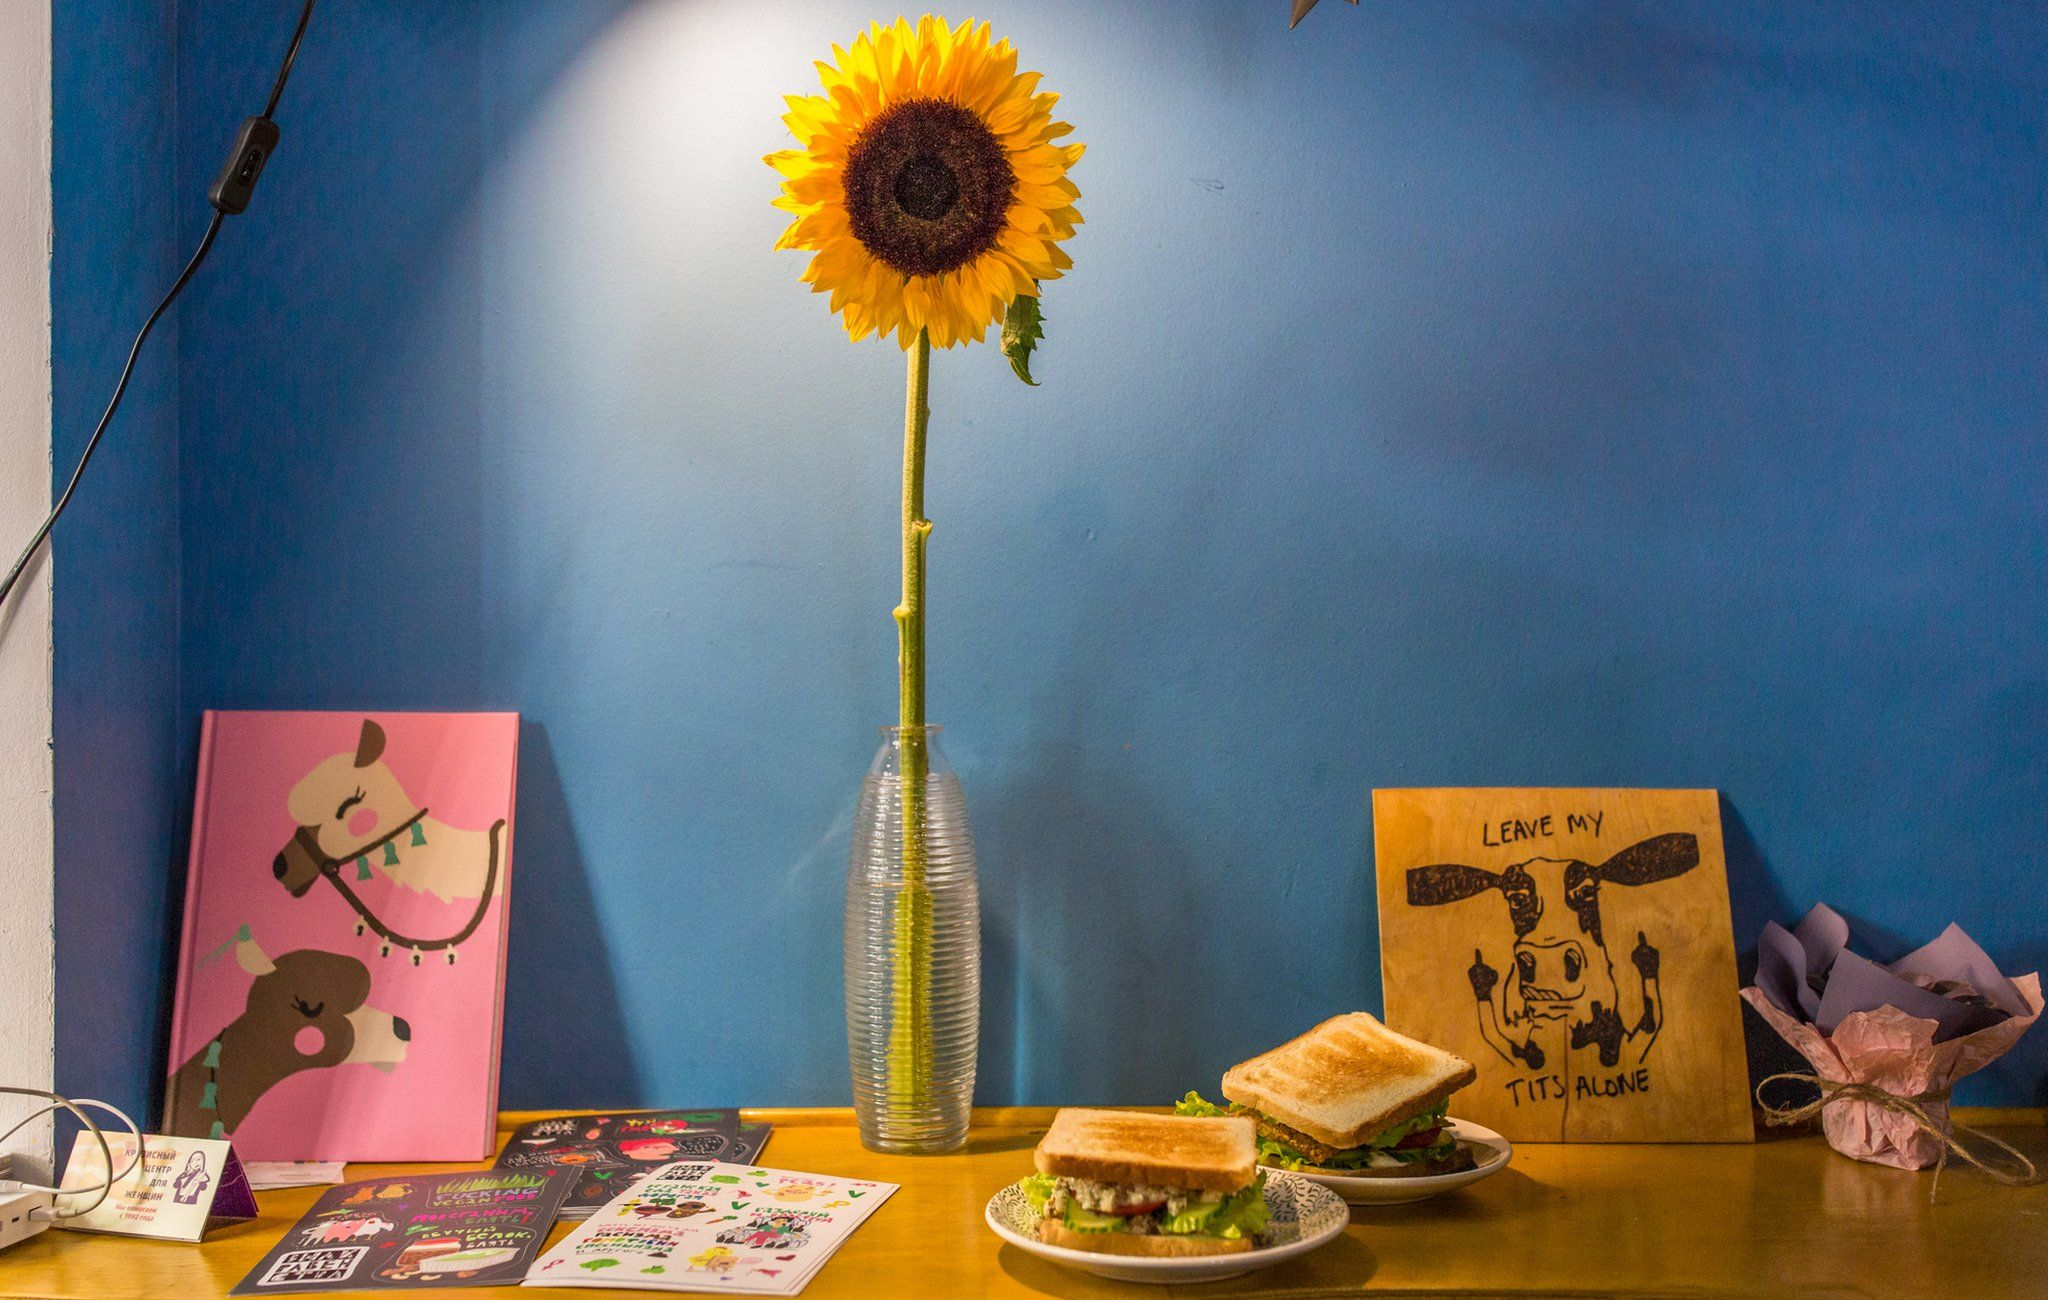 A drawing of a cow flipping off visitors with the message 'leave my tits alone', next to a sunflower in a vase on a table against a blue wall